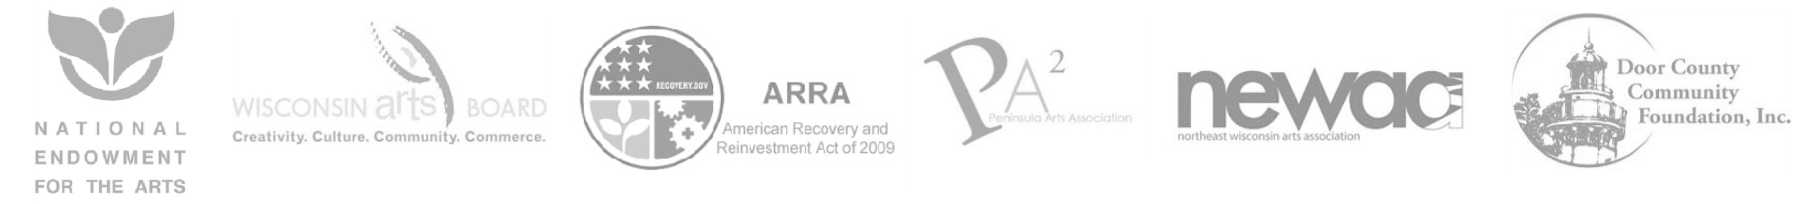 FUnding has been provided from numerous sources including the American Recovery and reinvestment act of 2009, and the national endowment for the arts.